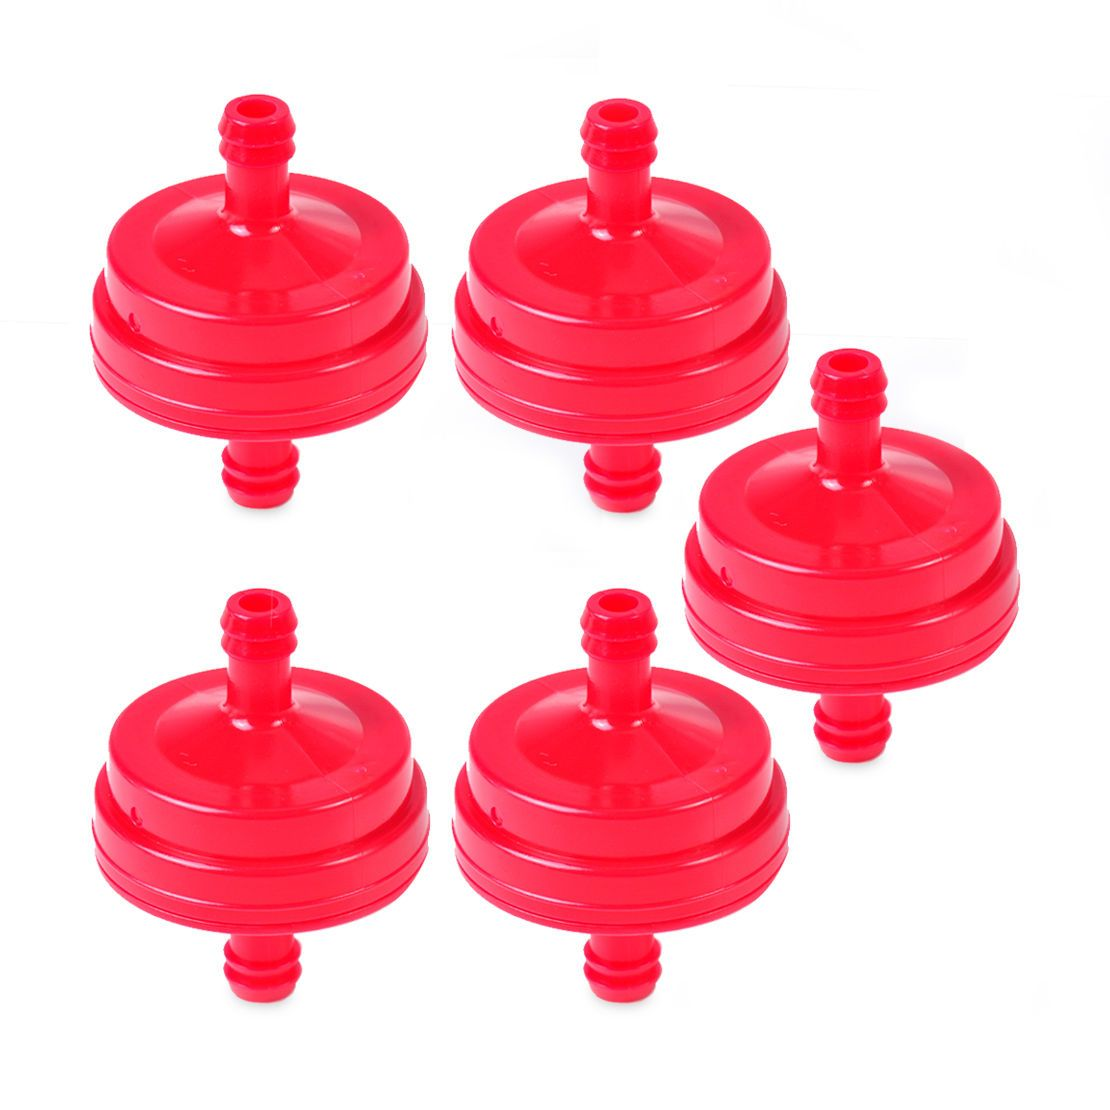 hight resolution of  2 5 5x 1 4 red inline fuel filter replacement 298090 fit for briggs stratton ebay home garden